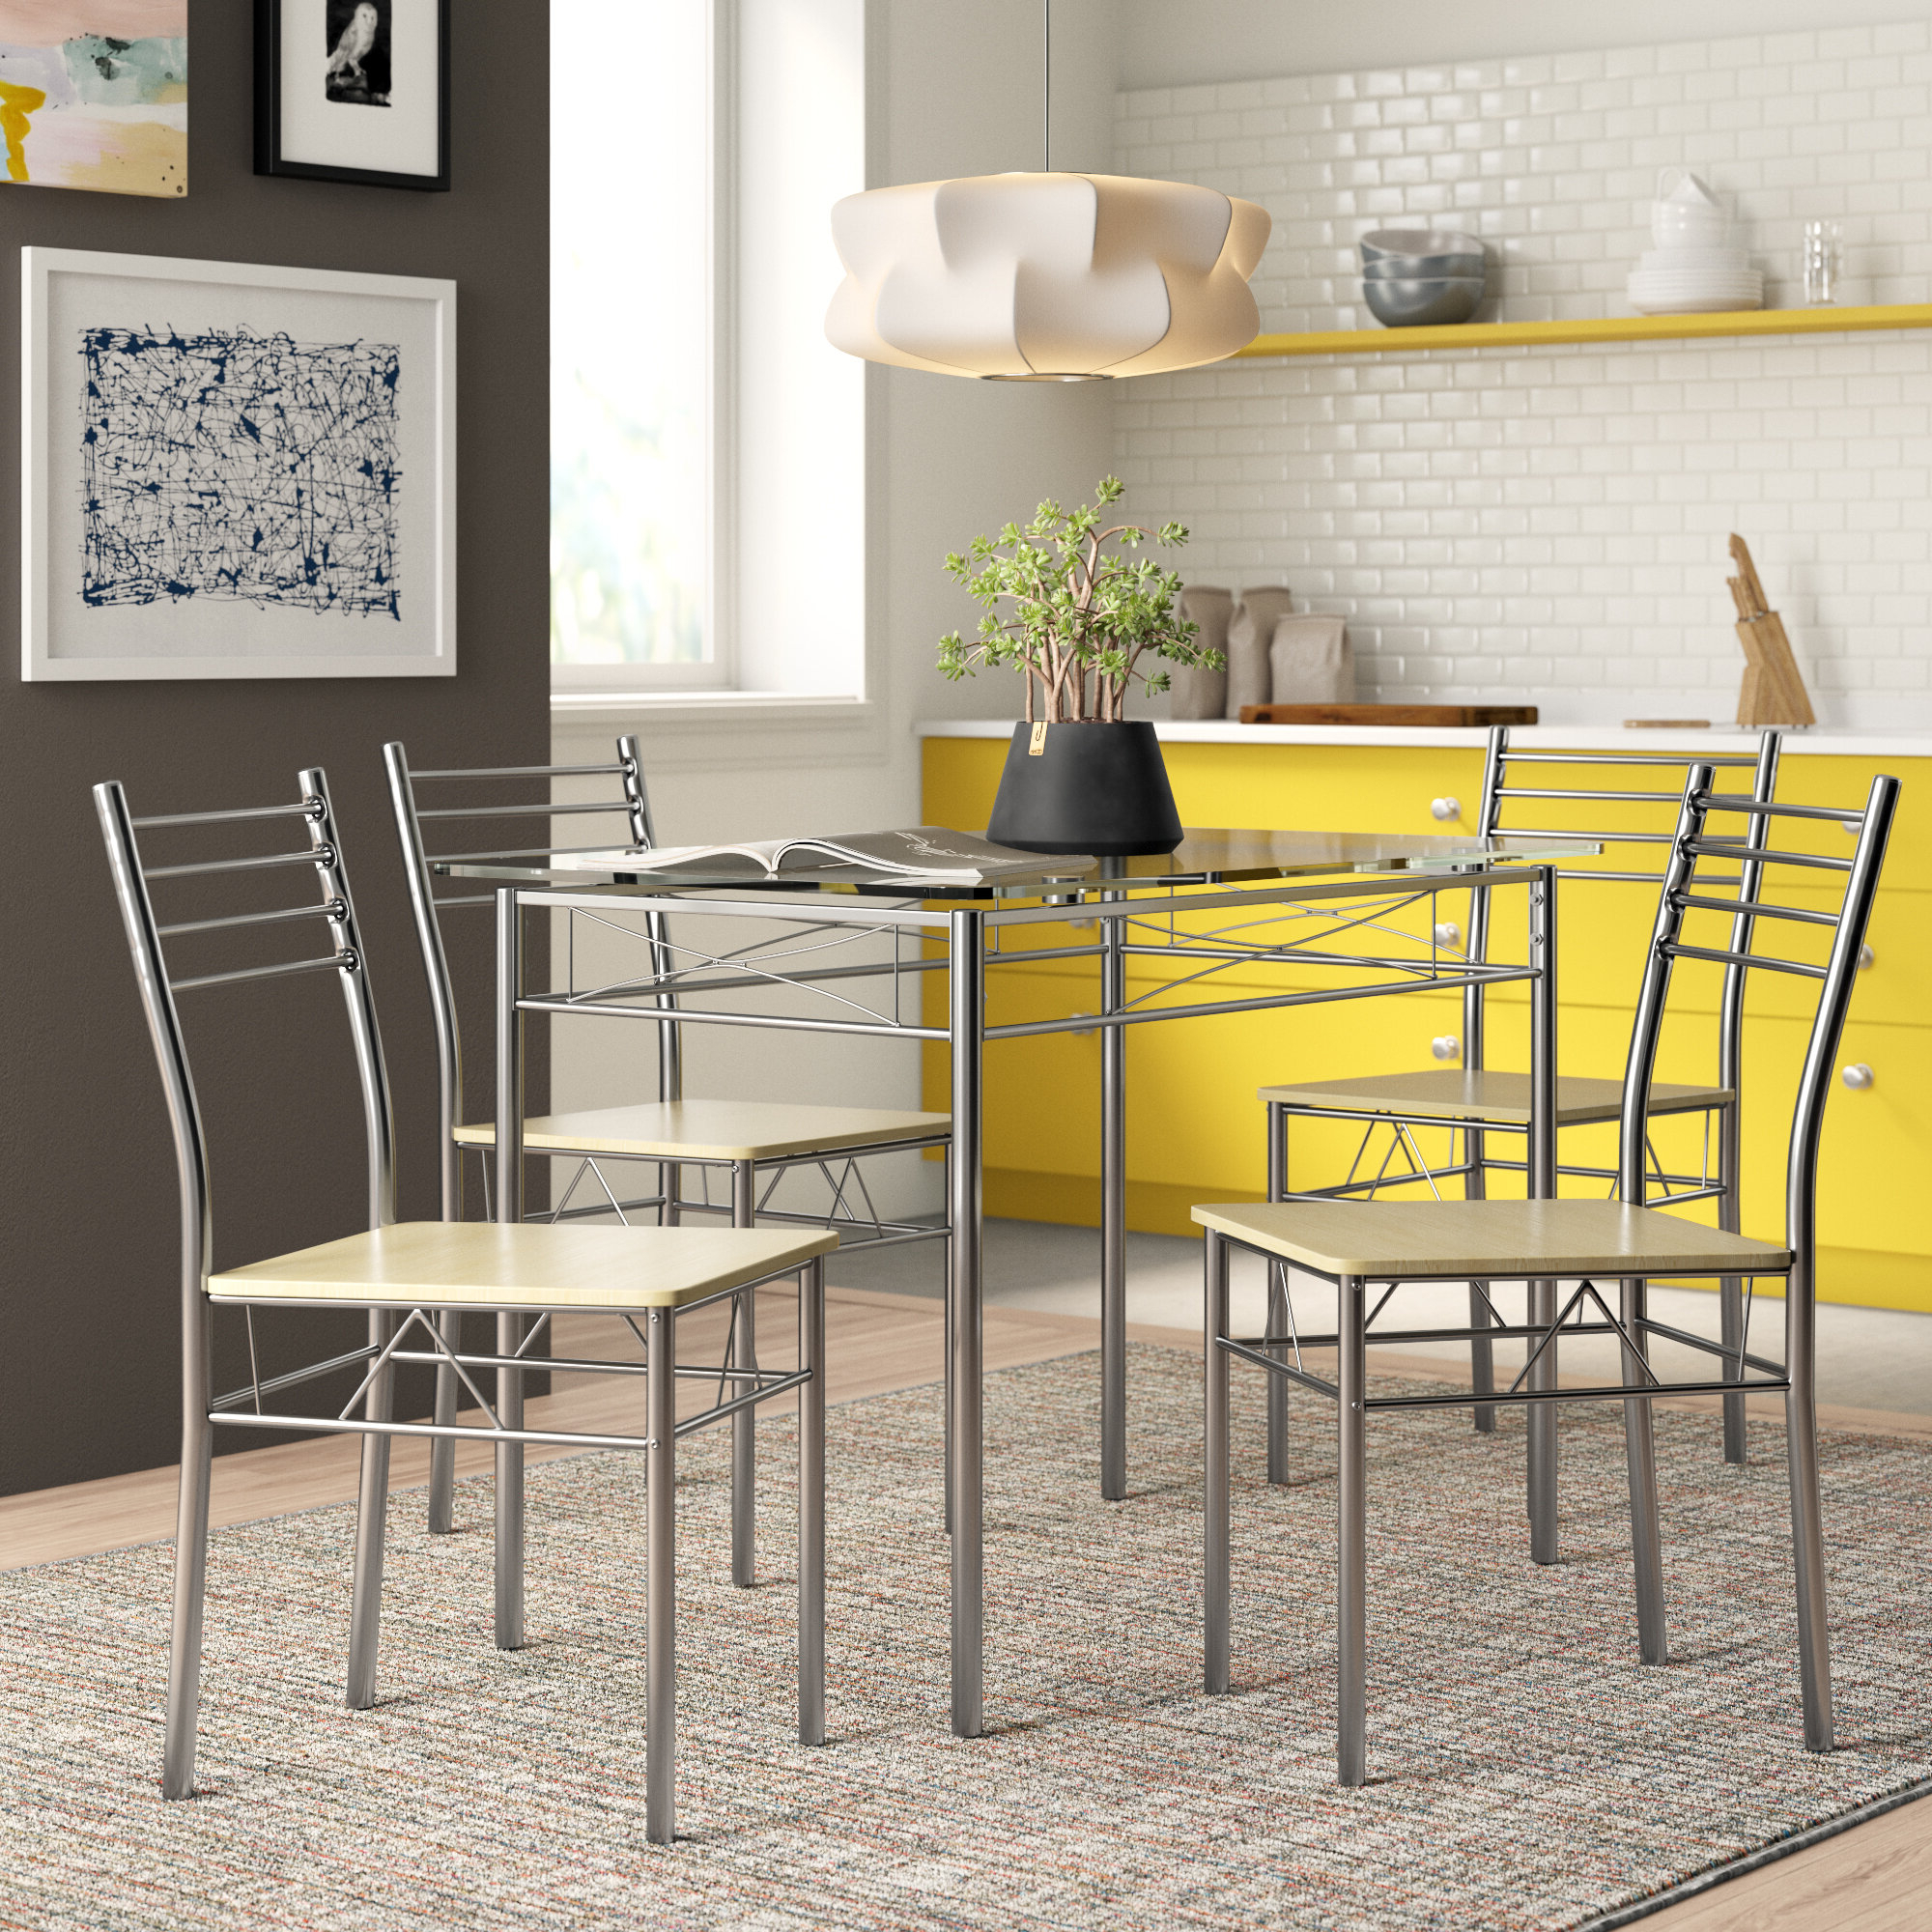 2019 Zipcode Design North Reading 5 Piece Dining Table Set & Reviews Throughout Noyes 5 Piece Dining Sets (View 4 of 25)